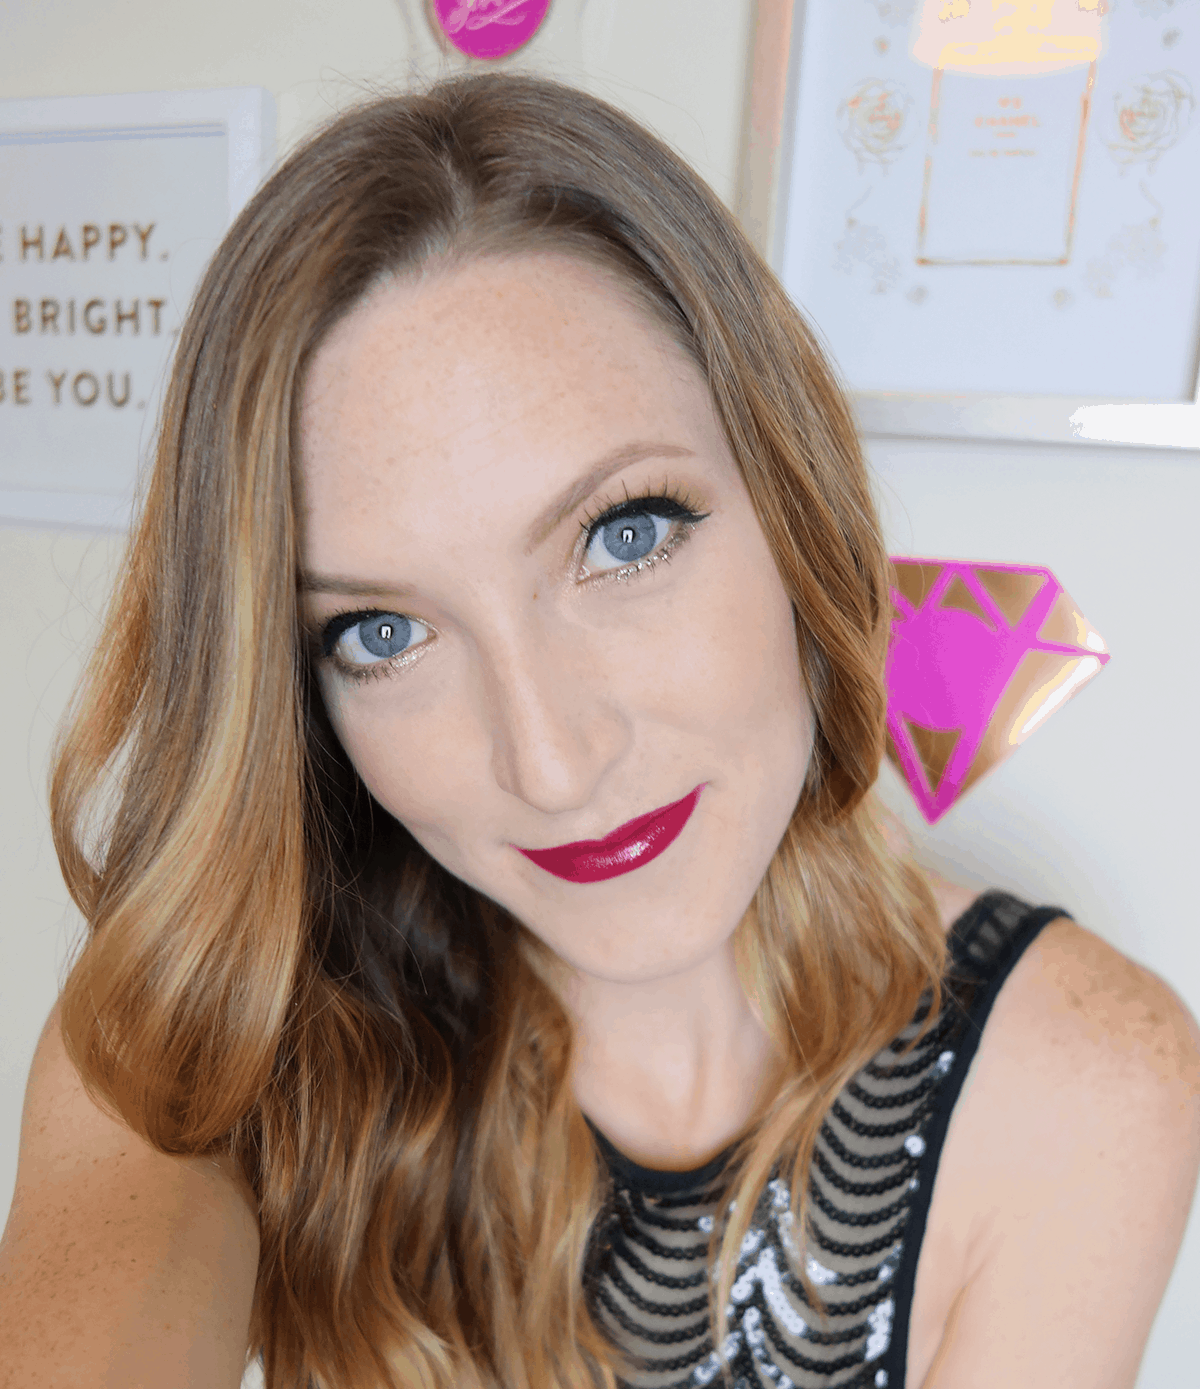 Get all dolled up with this glam Valentine's Day makeup look! | oliveandivyblog.com